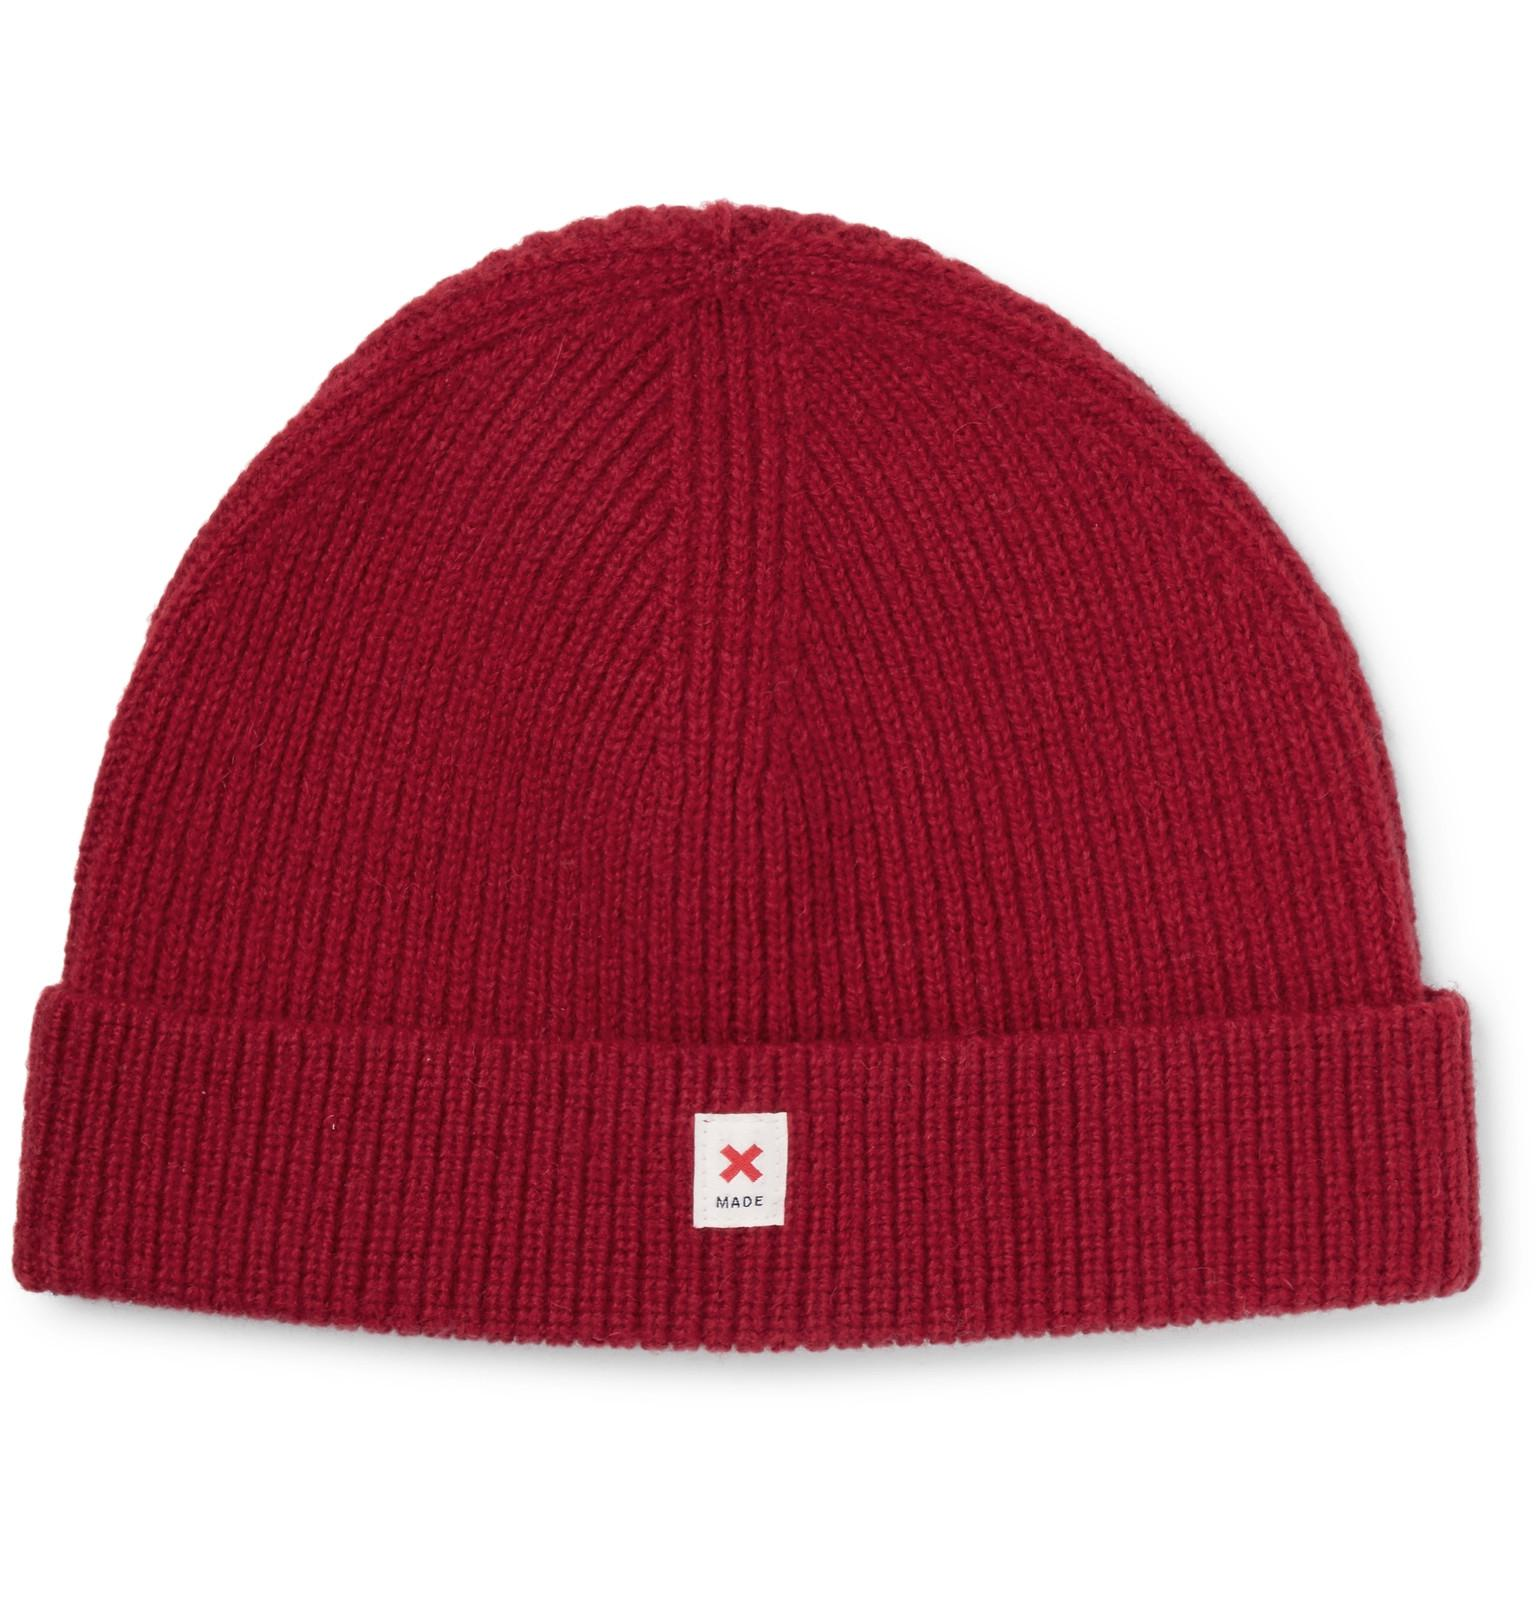 01c1b186f6 Best Made Company The Cap Of Courage Wool Beanie in Red for Men - Lyst